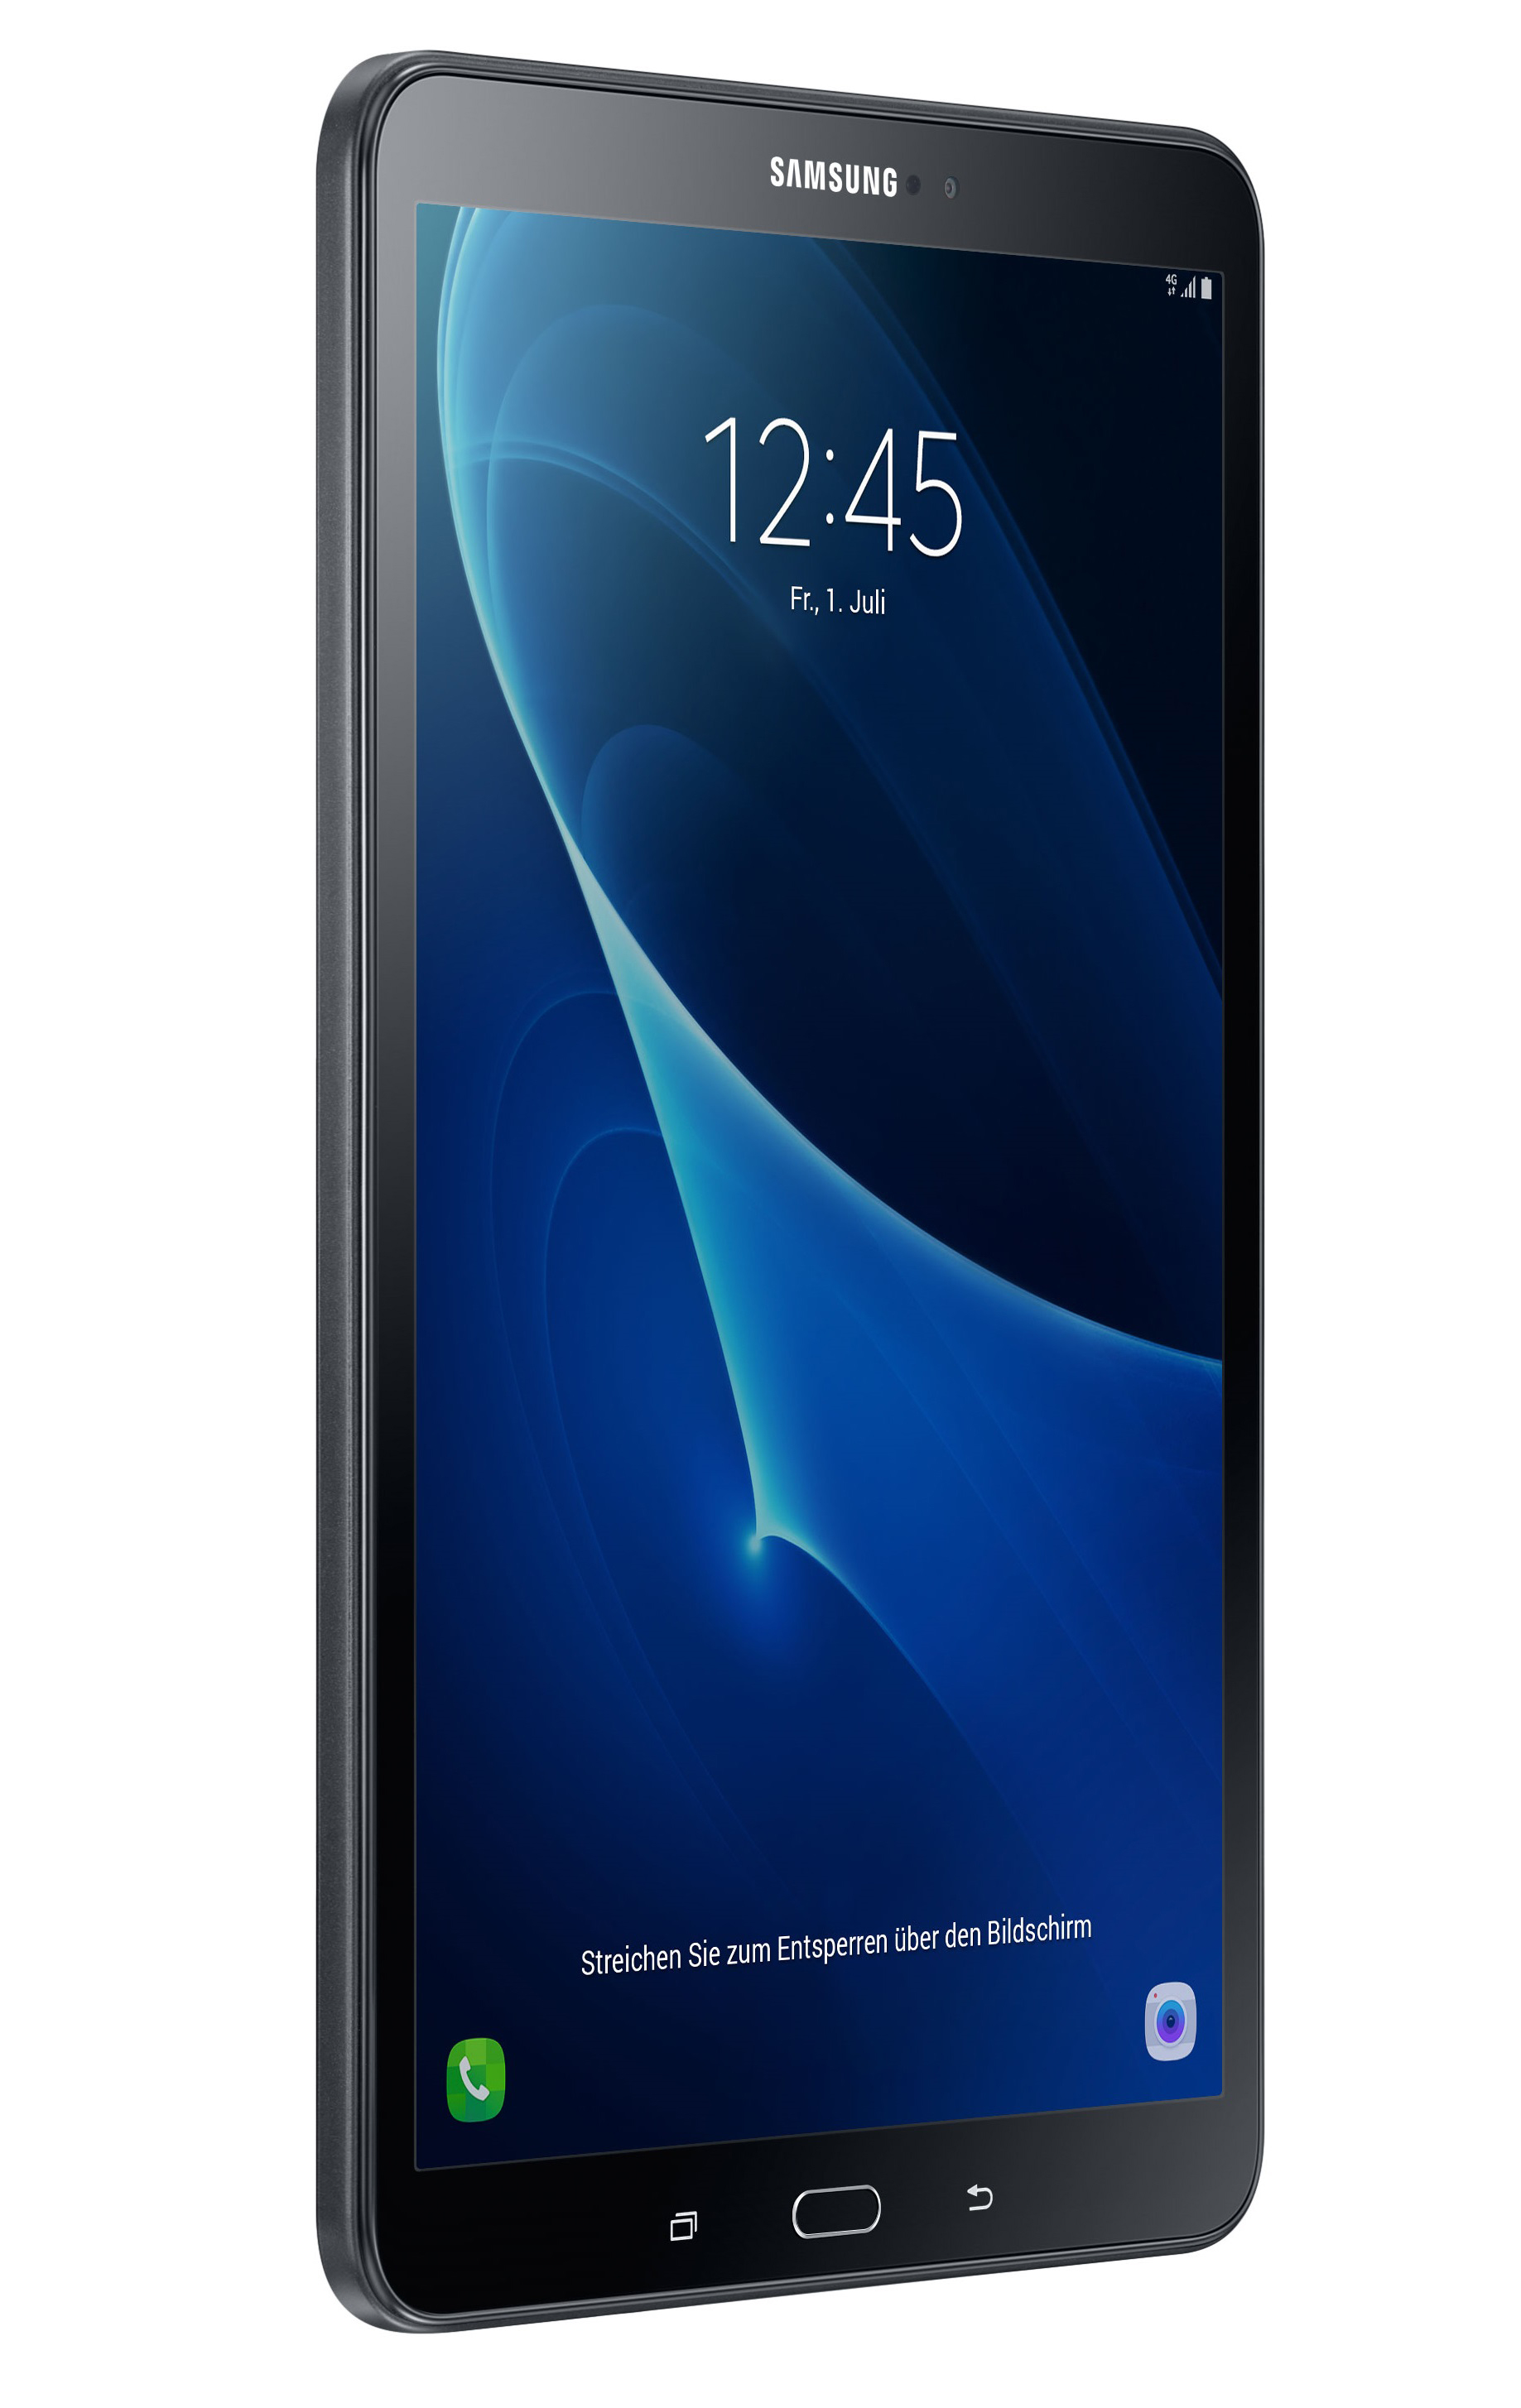 Full Hd Wallpaper For 5 Inch Screen Samsung Galaxy Tab A 10 1 2016 Tablet Review